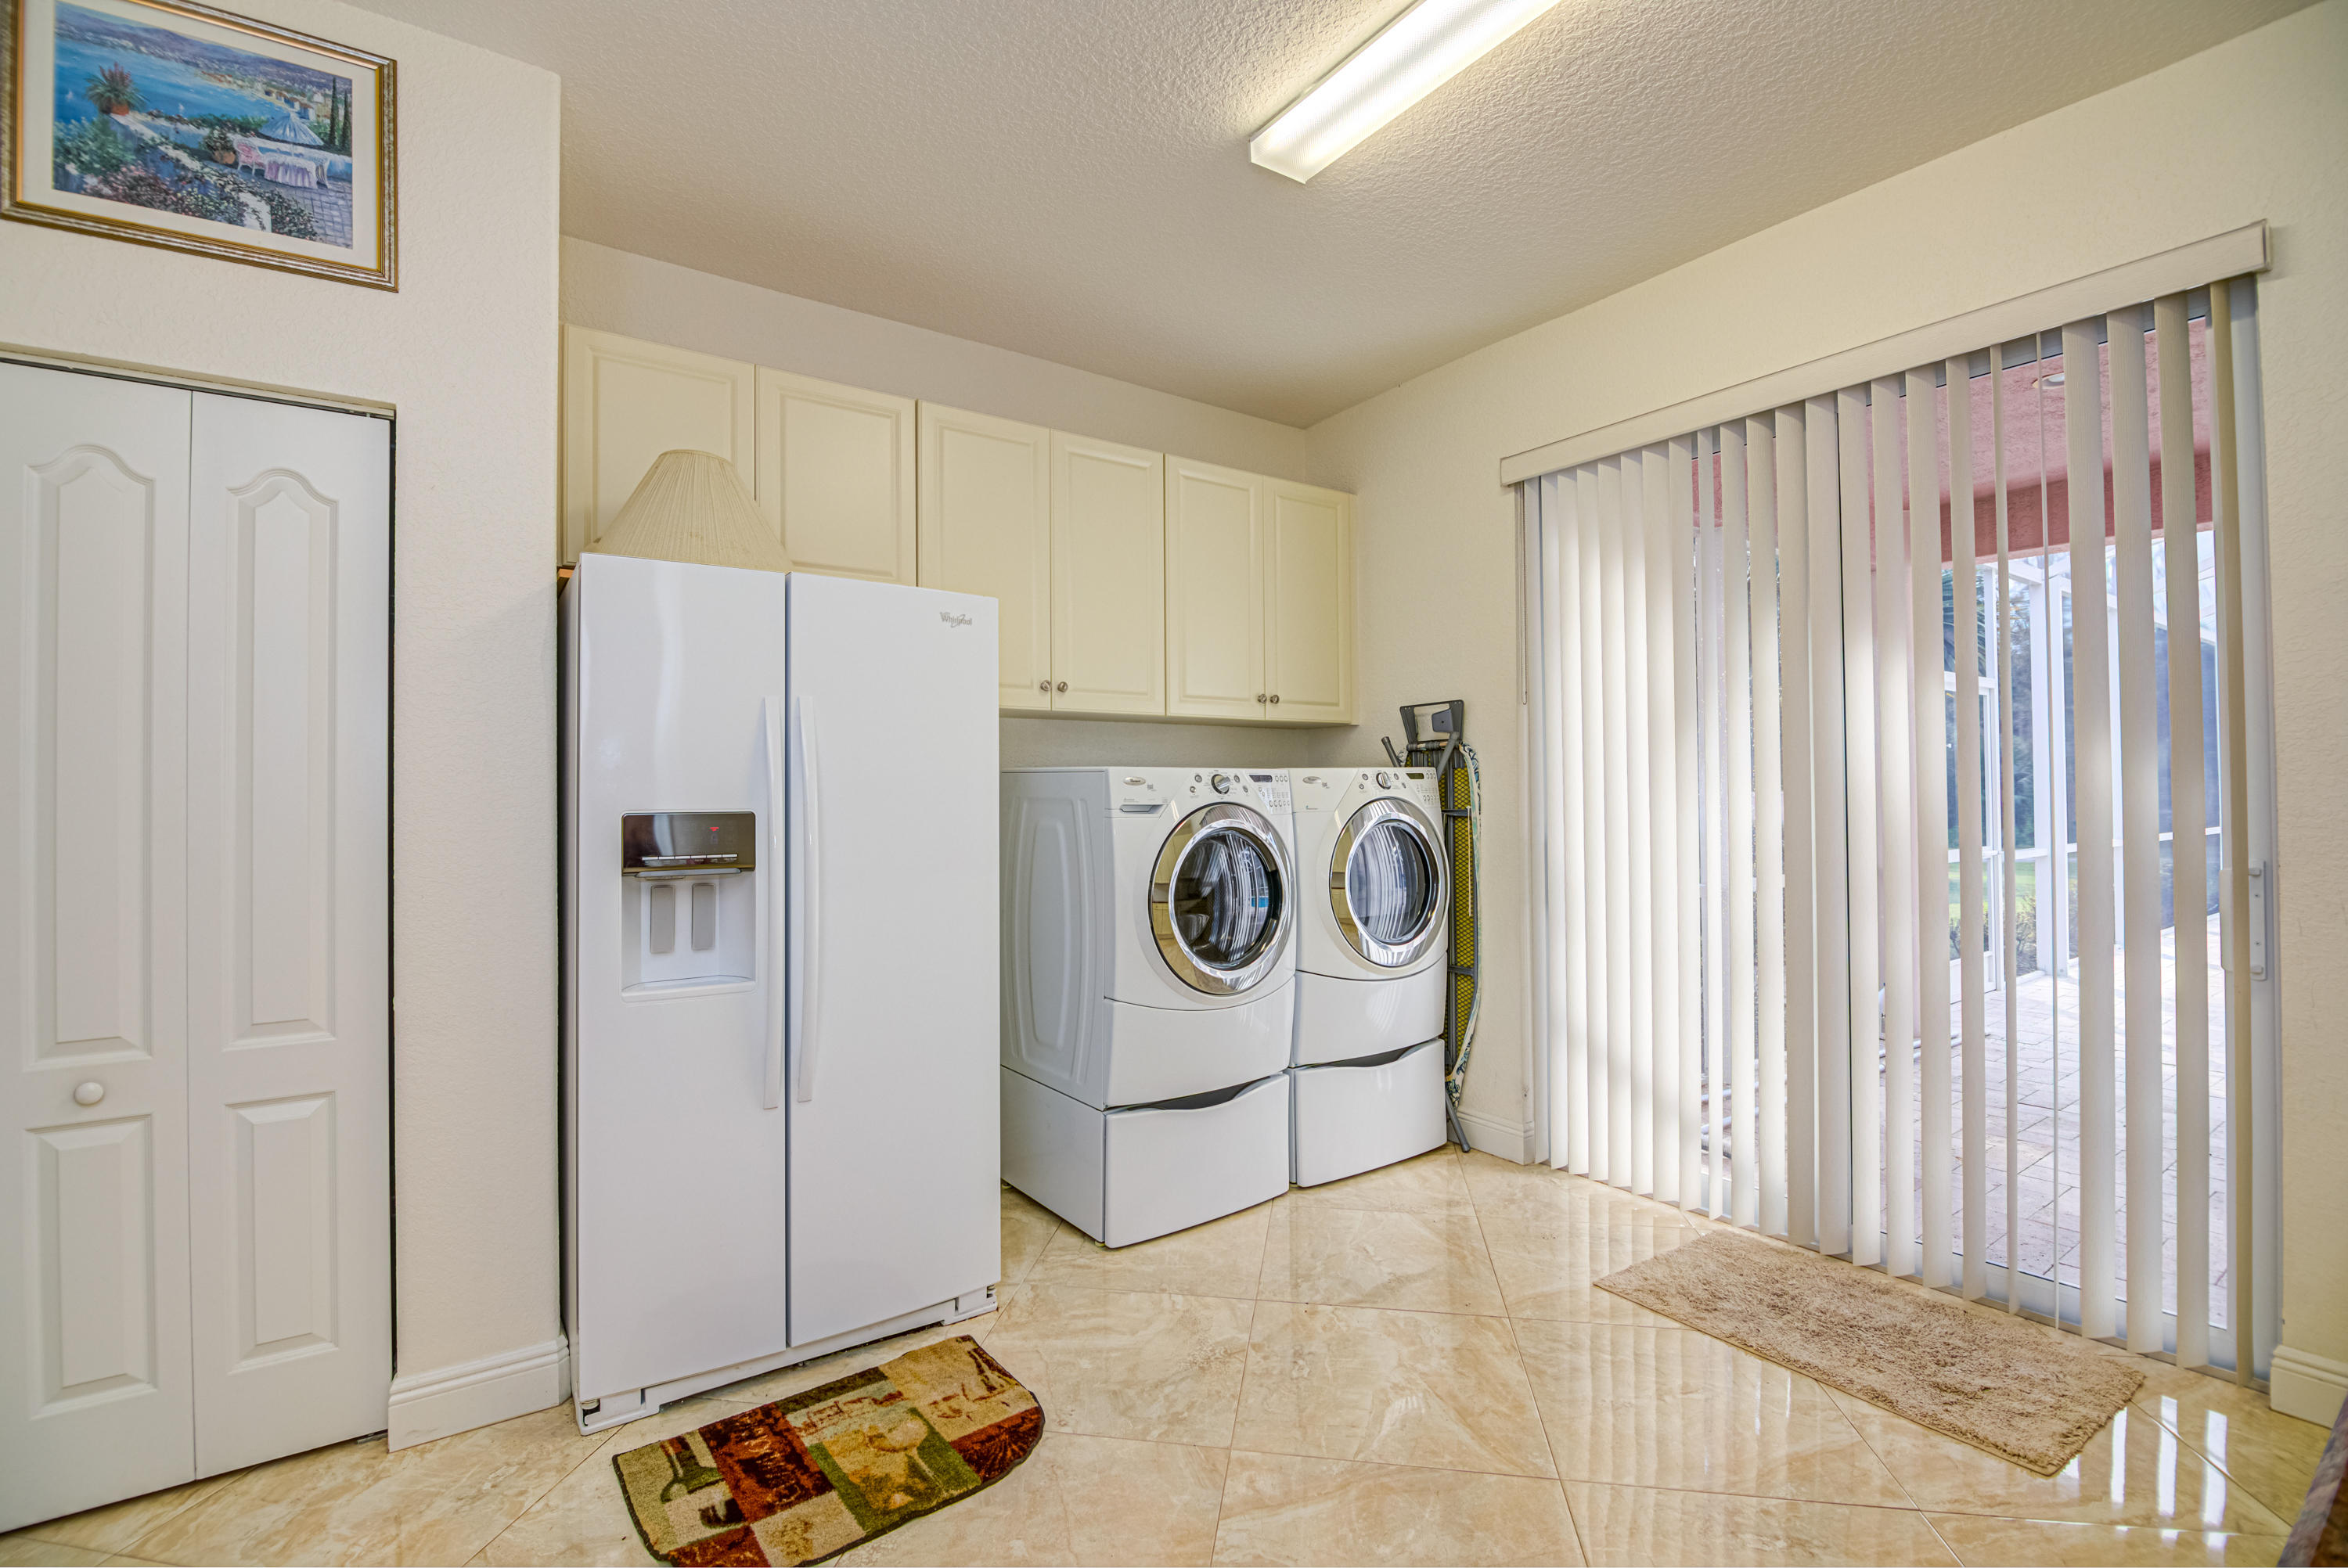 LAUNDRY ROOM IN MAIN HOUSE